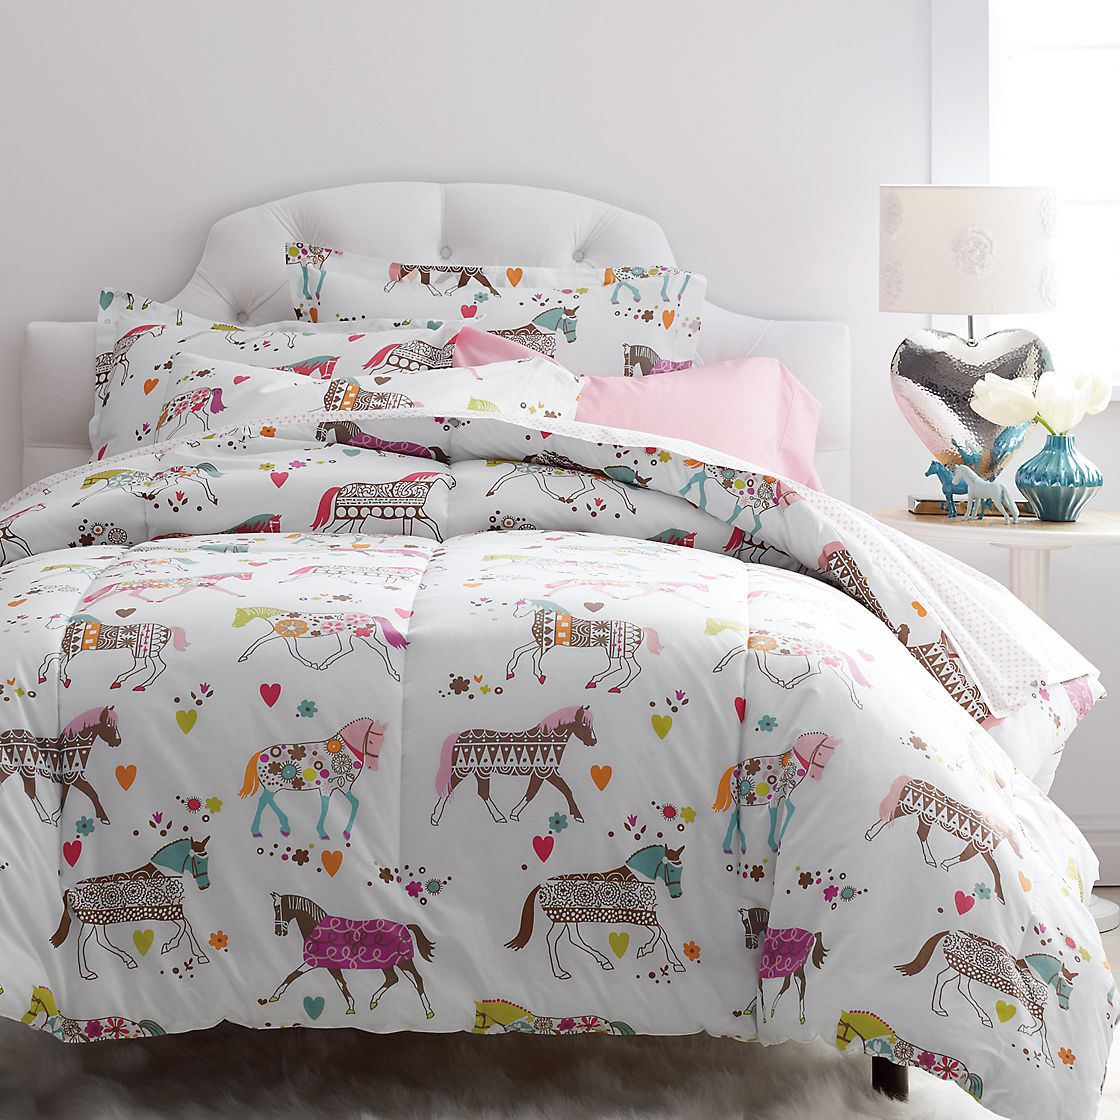 Pottery Barn Horse Bedding | Horse Bedding for Girls | Horse Themed Comforter Sets